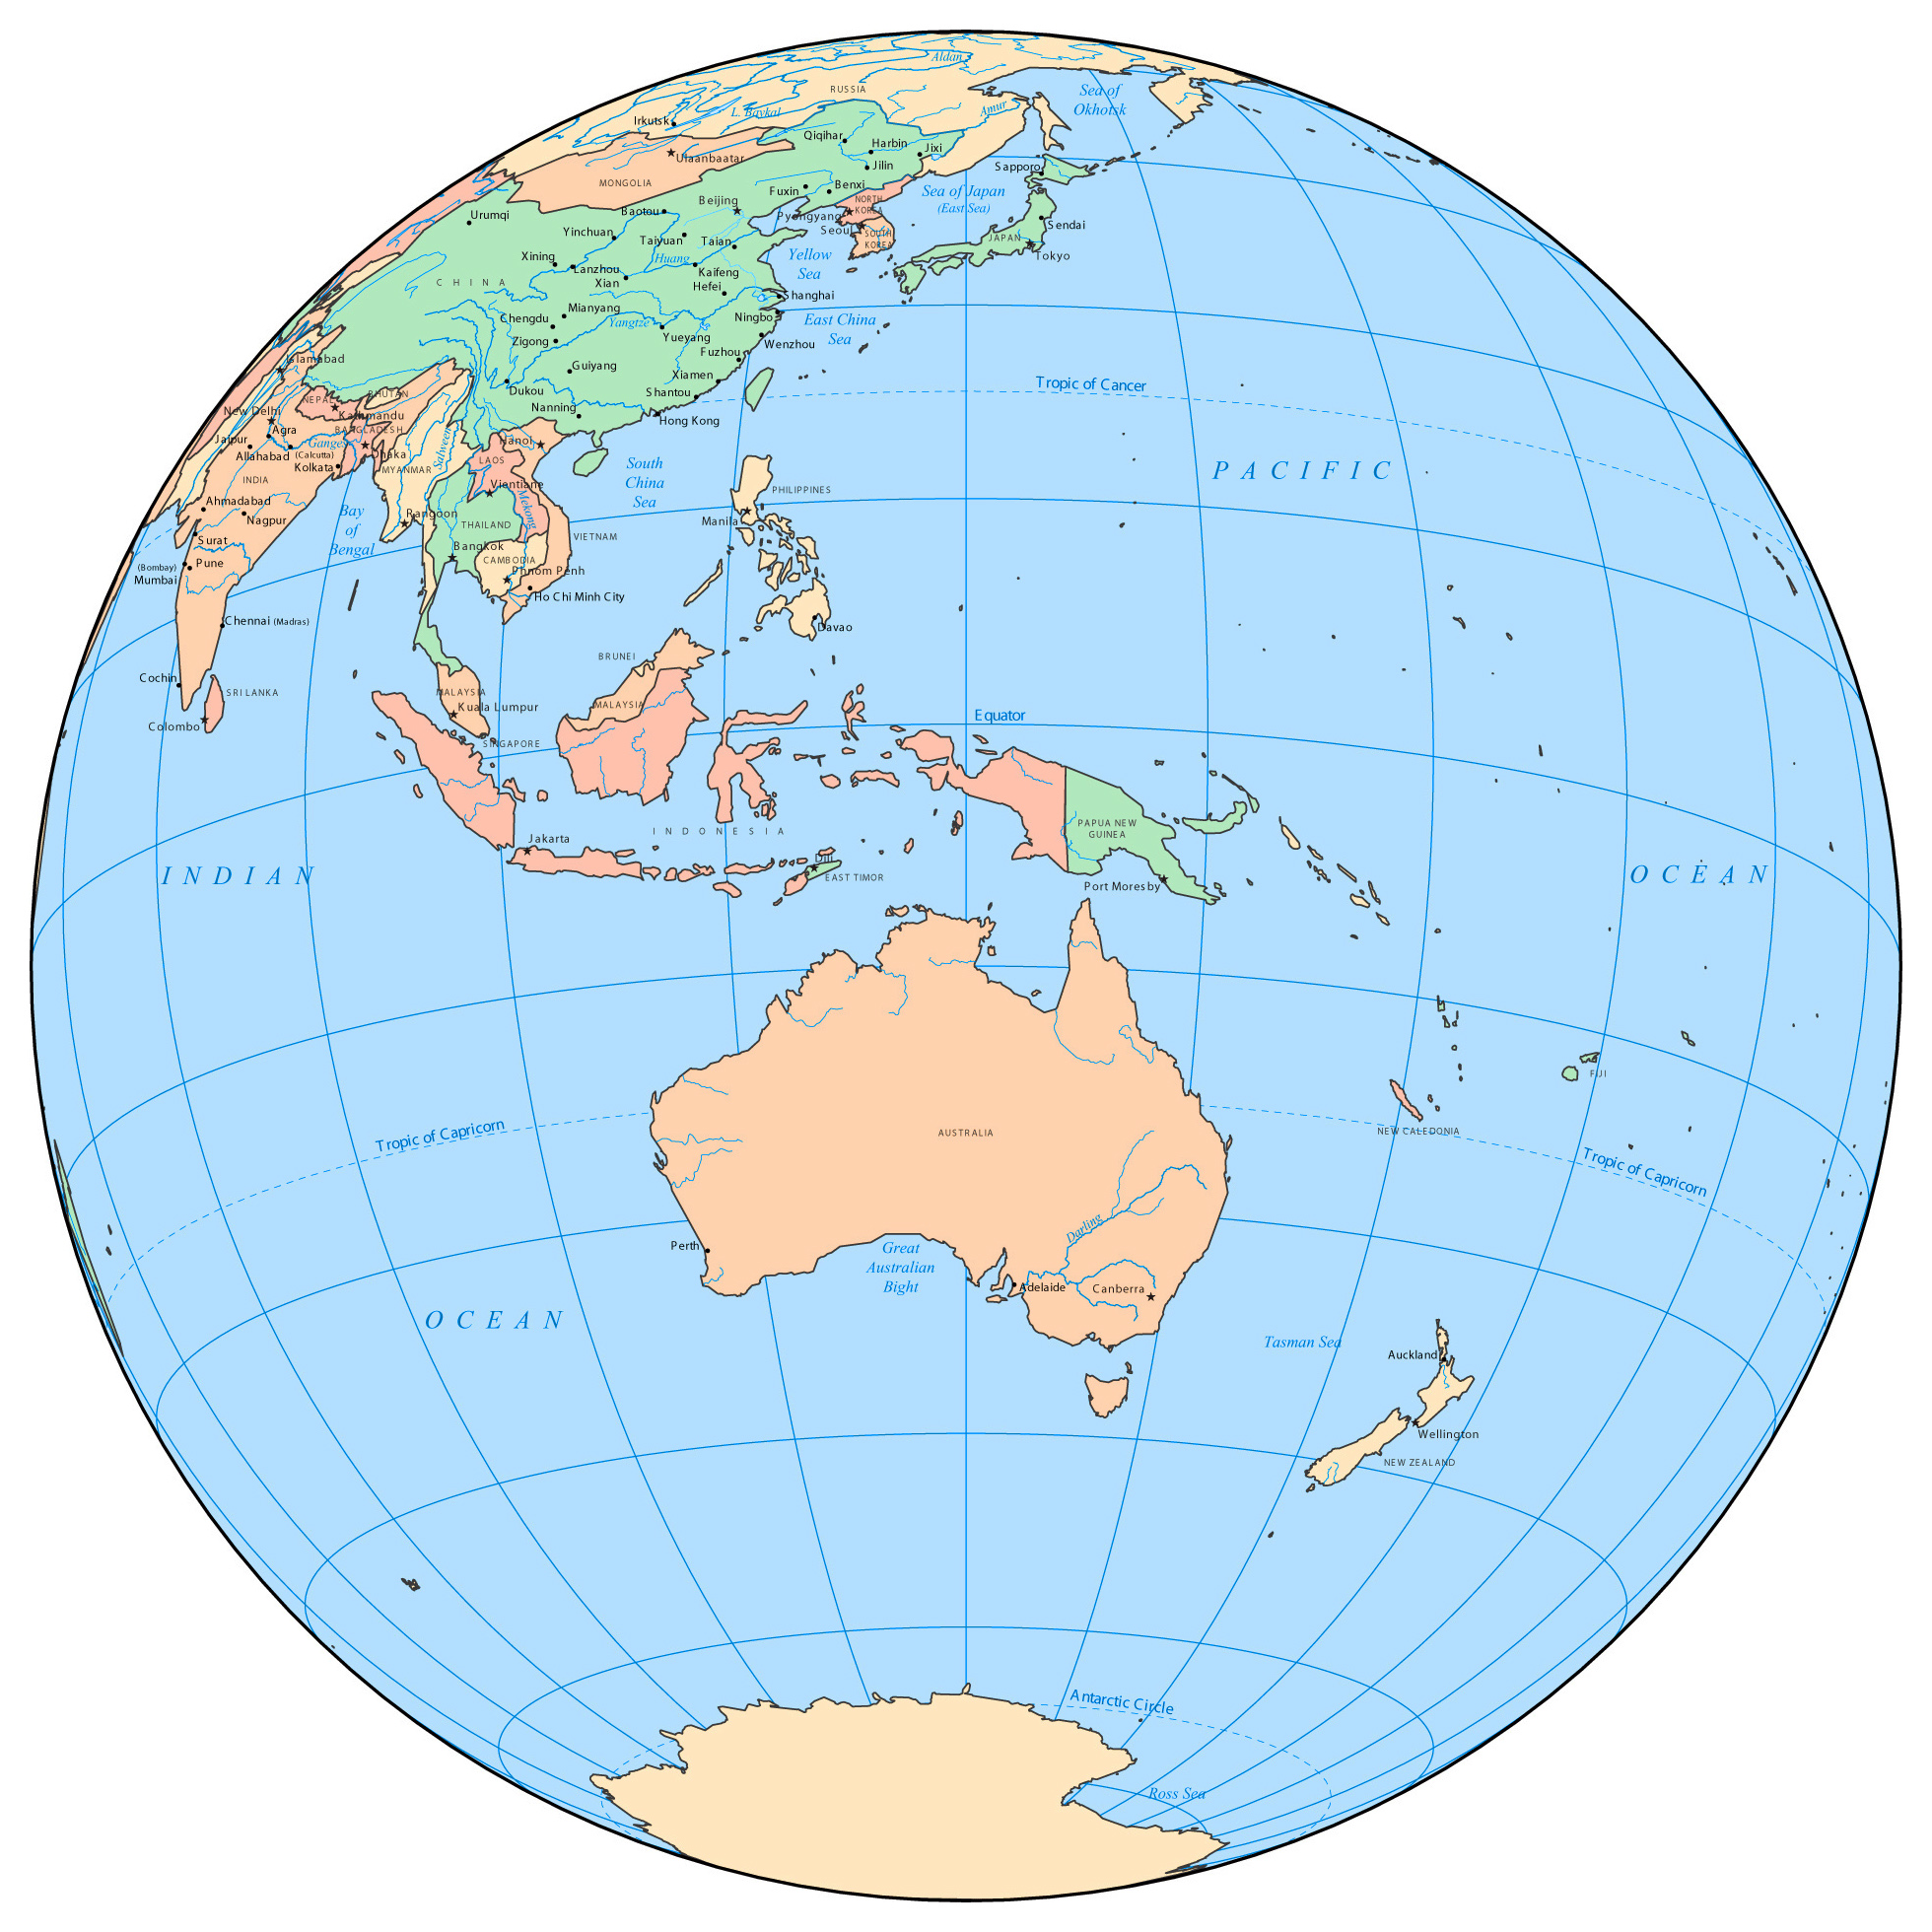 australia on a map of the world australia location on world map